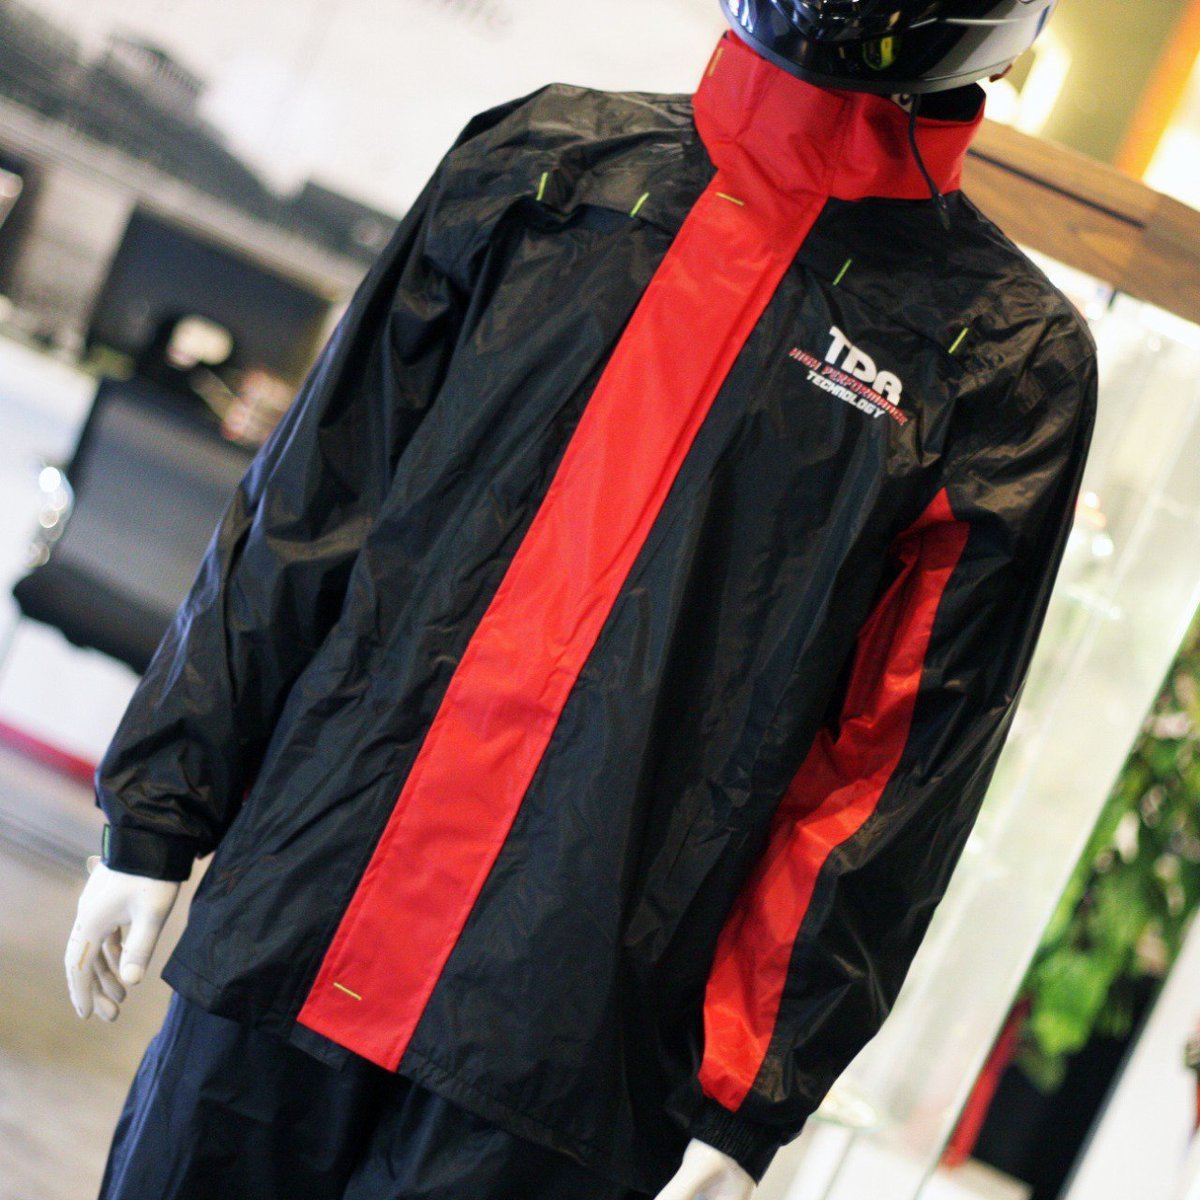 One Team Store Oneteamstore Twitter Jacket Tdr Raincoat Designed With Special Material For Durability Featured Net Inside The Reflective Stripping And Magic Tape To Prevent Leaking